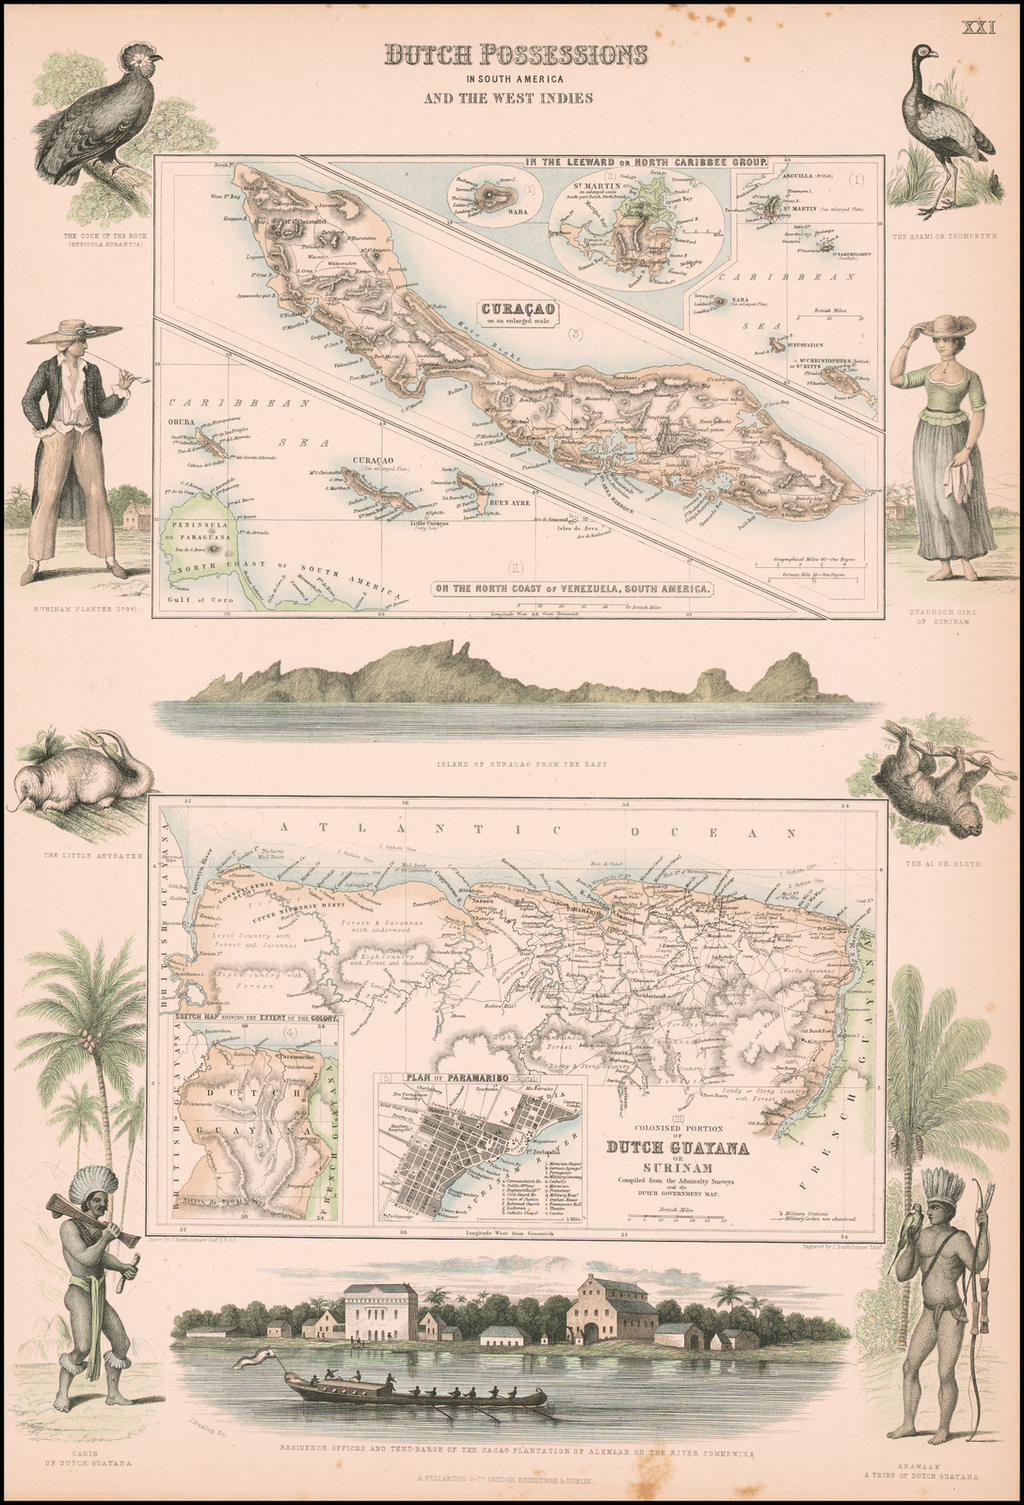 (Curacao, Leeward Islands, Guyana)  Dutch Possessions in South America and The West Indies By Archibald Fullarton & Co.